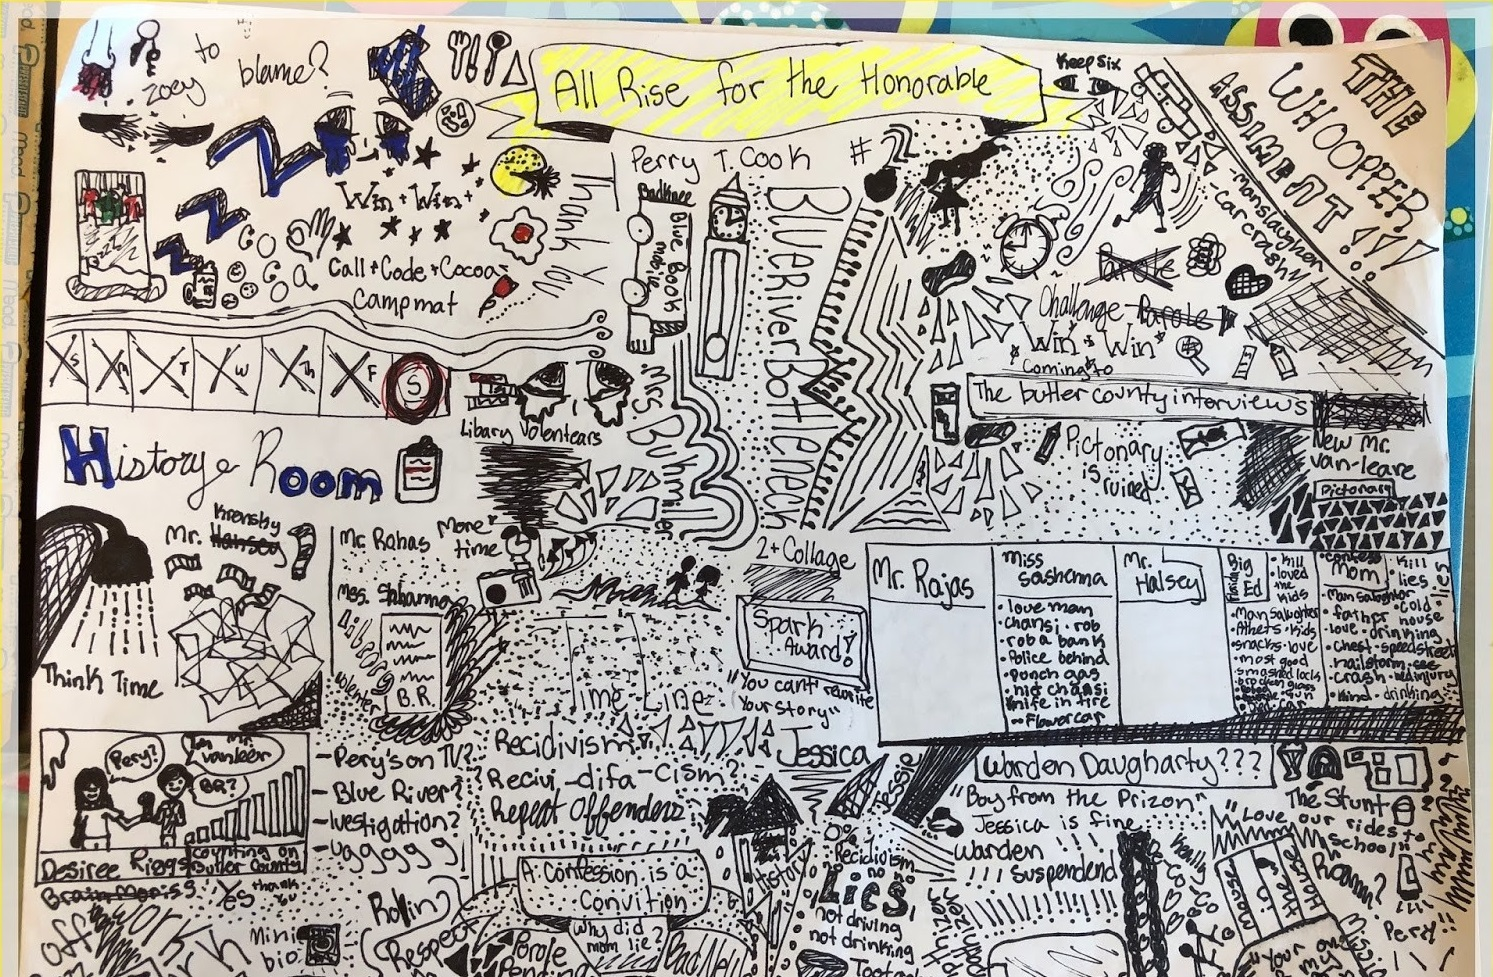 A product of sketchnoting completed by a student.